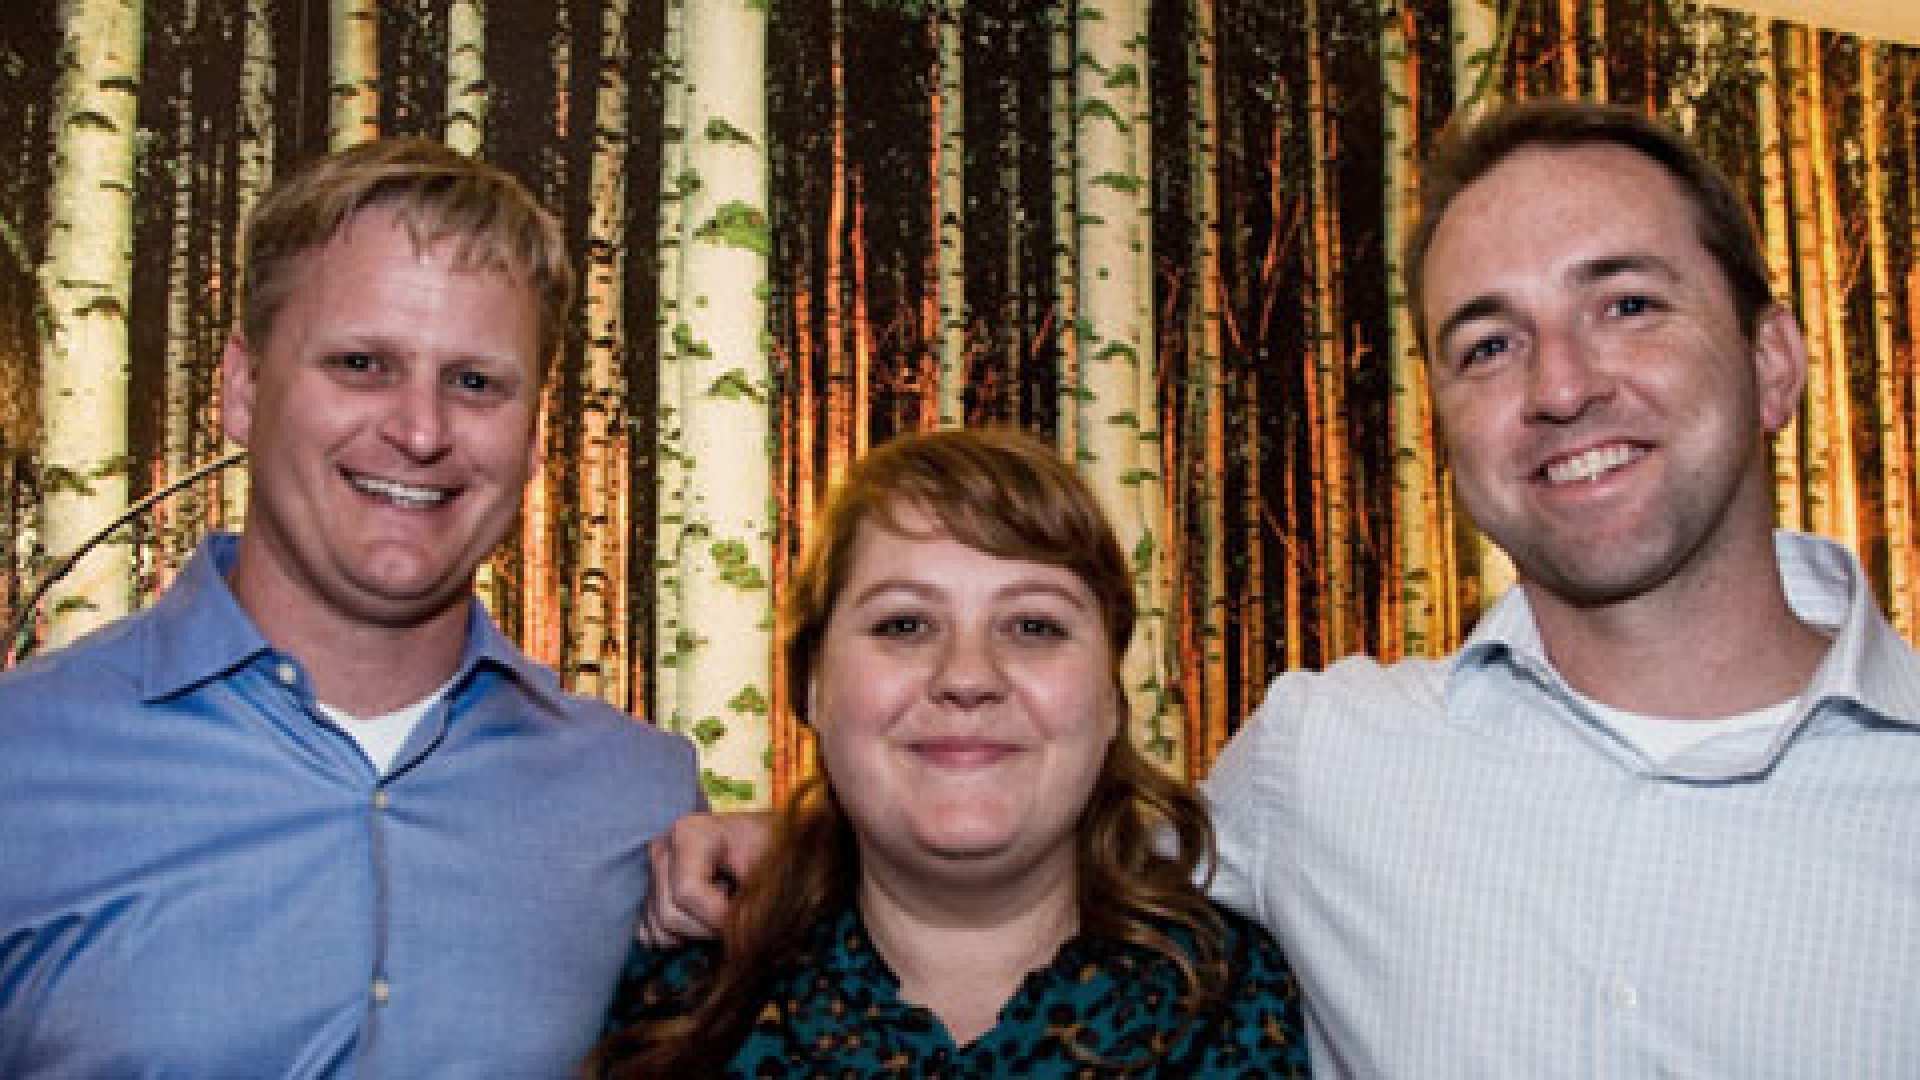 The founding partners of Projectline Services, from left to right: Mike Kichline, Anika Lehde, and David Jones.